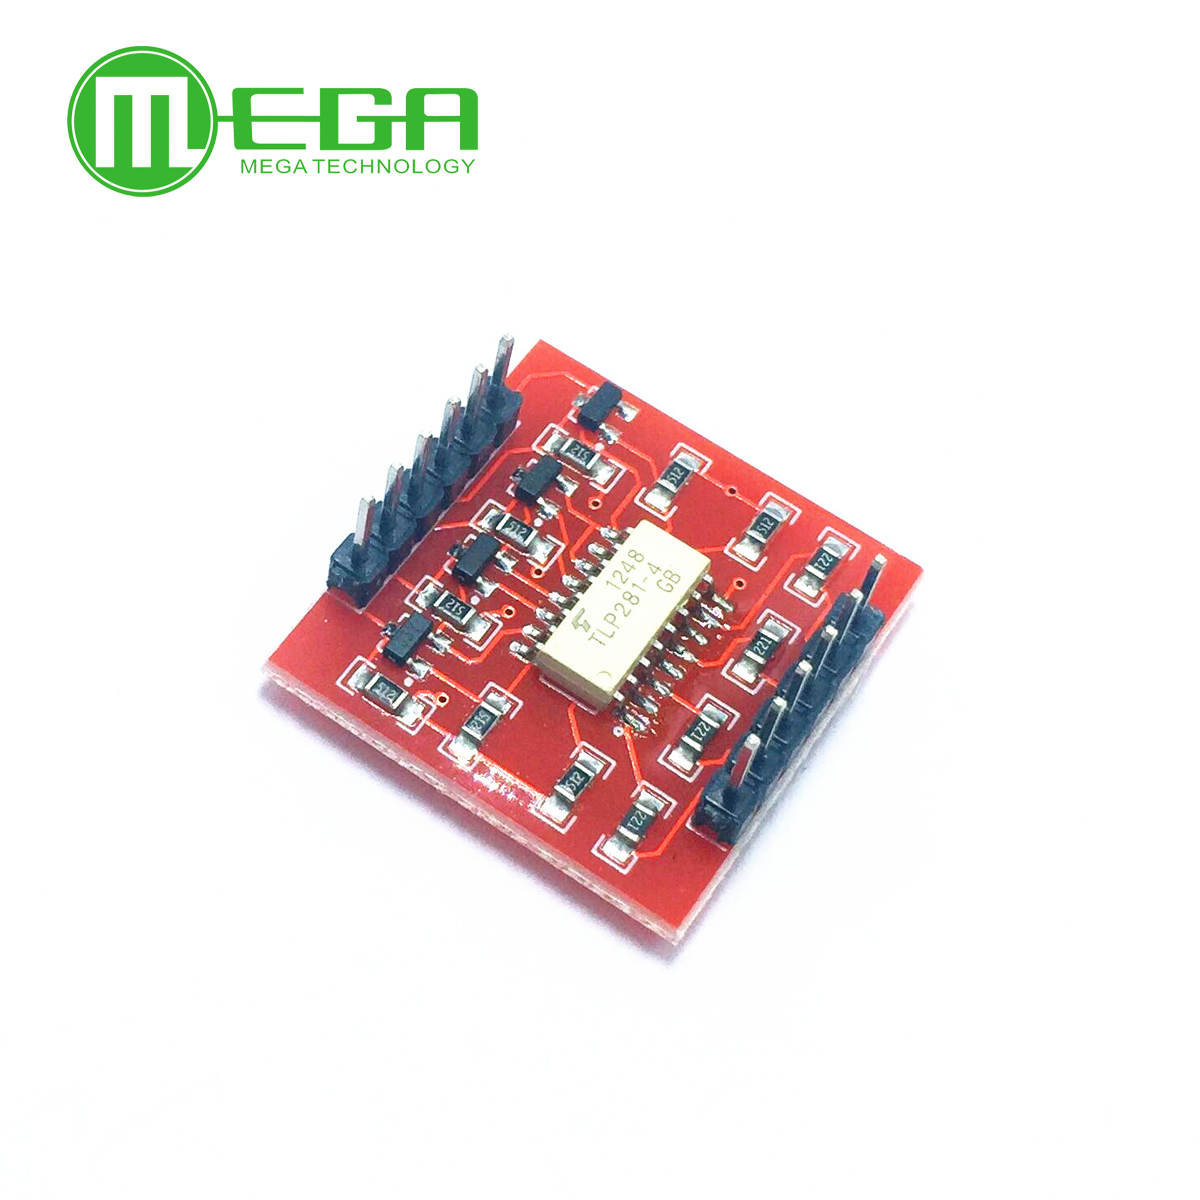 5pcs Hlk Pm01 Ac Dc 220v To 5v Step Down Power Supply Module Looking For A Red Laser Diode Circuit Controlablelm317components01 1pcs Tlp281 4 Channel Opto Isolator Ic Arduino Expansion Board High And